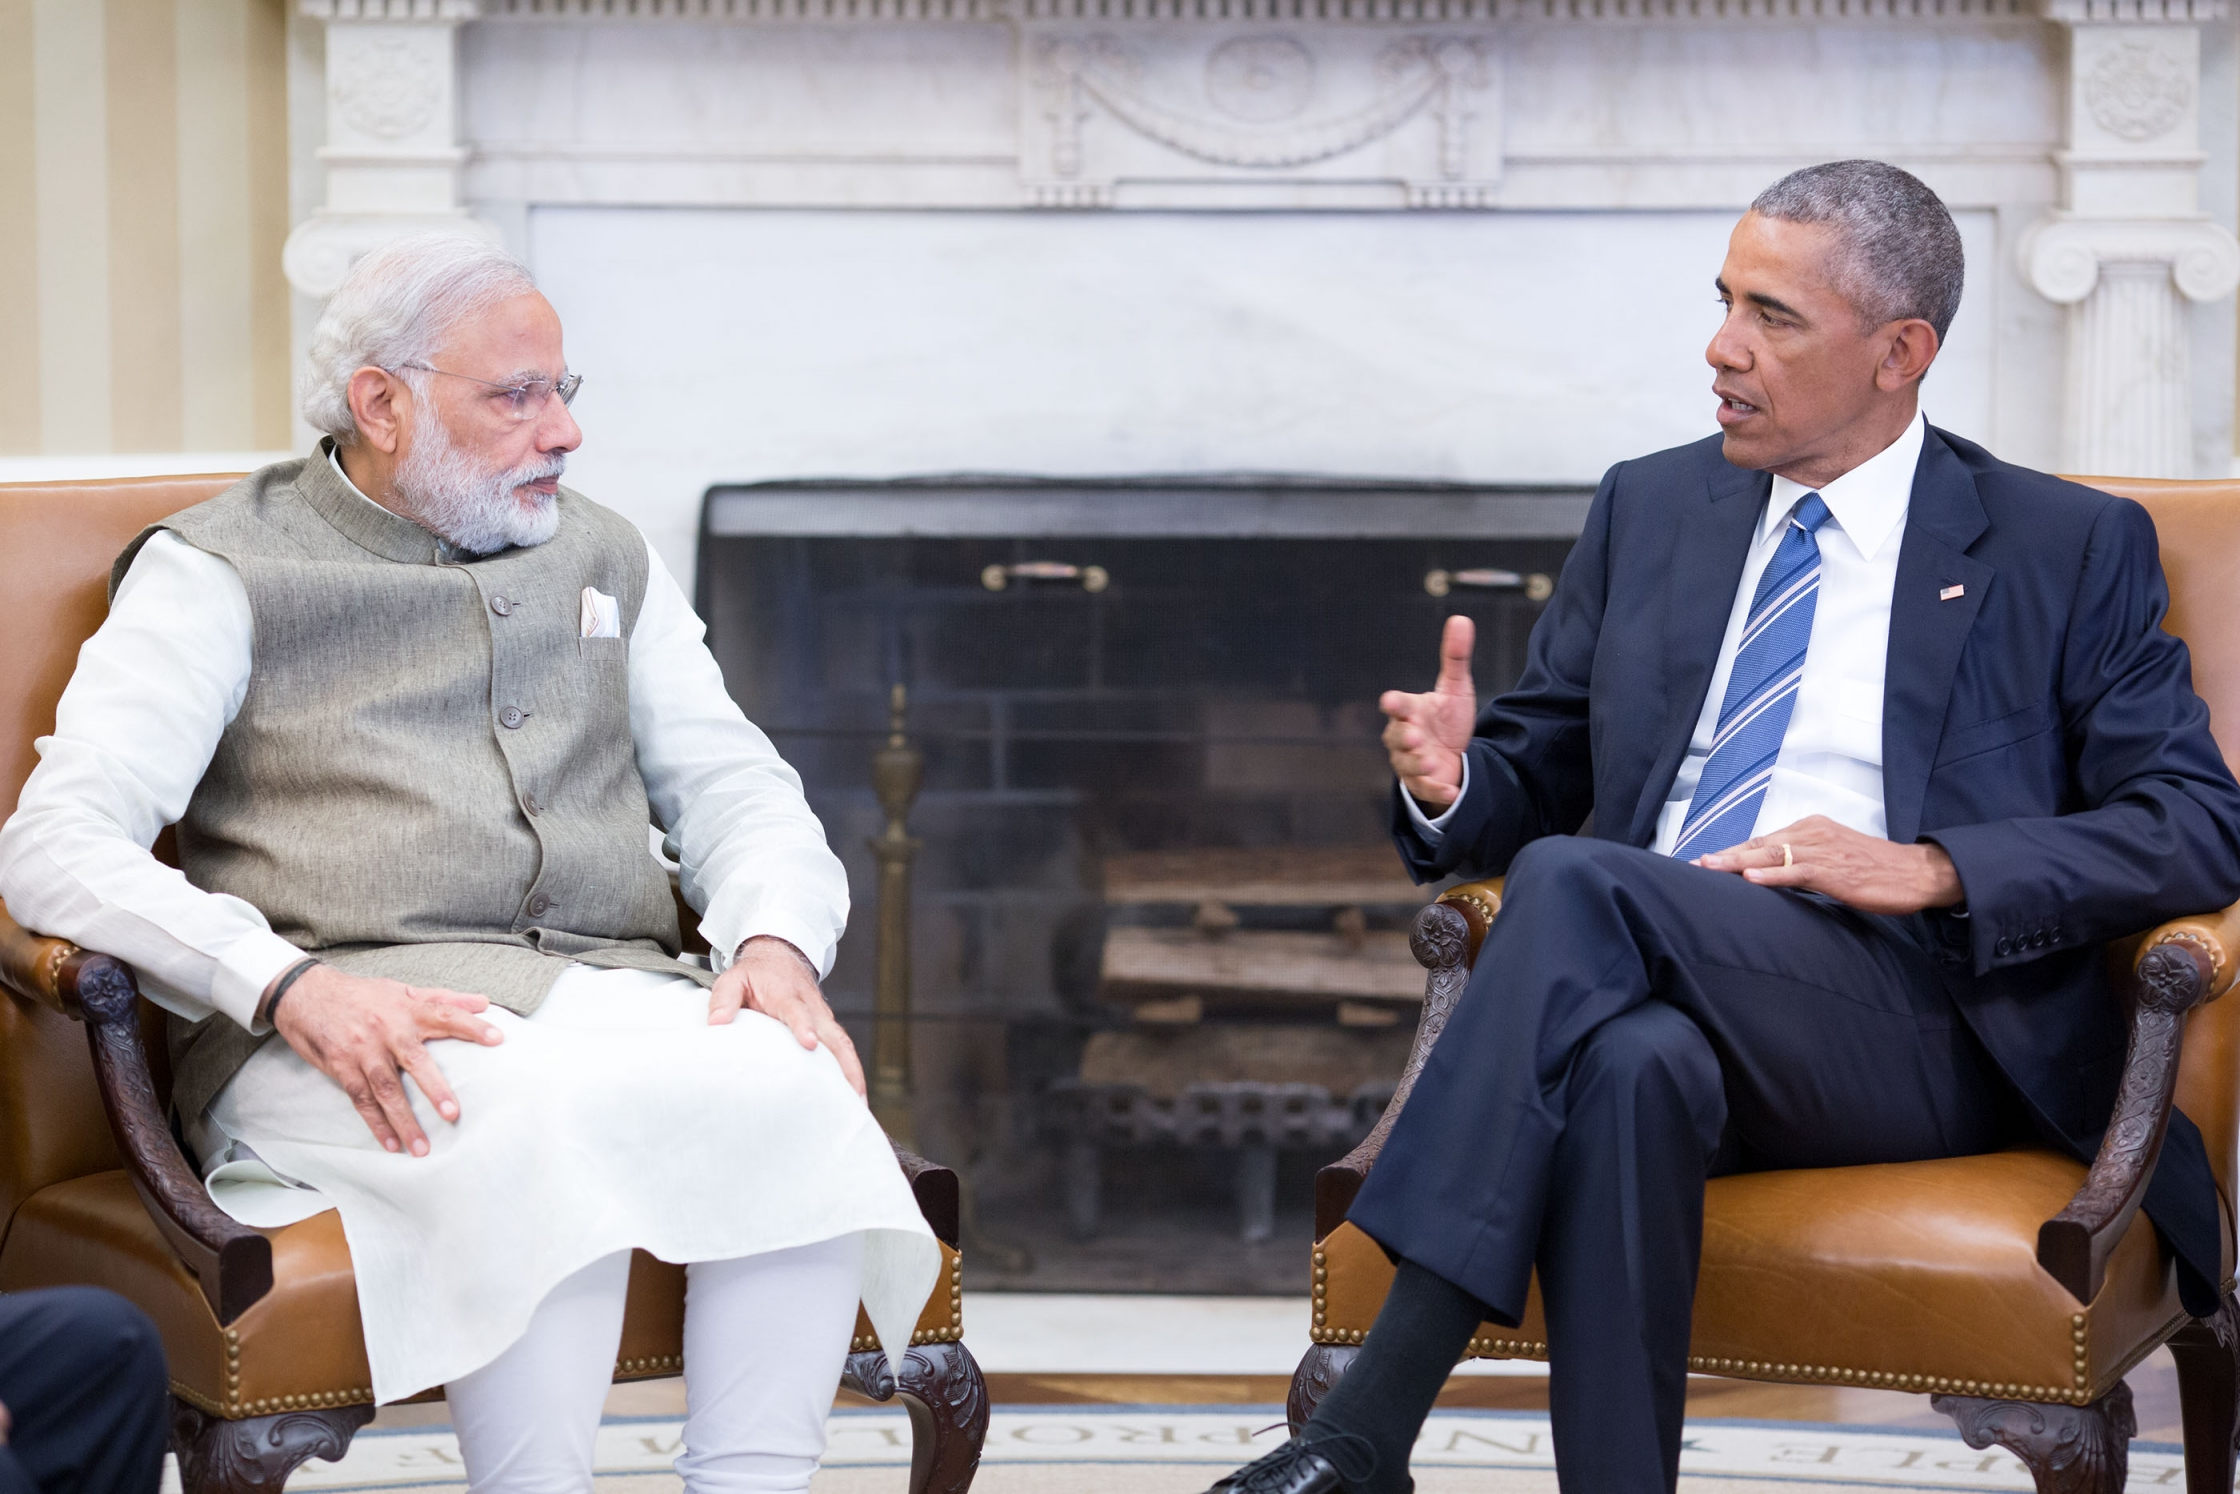 Prime Minister Modi of India meets with the President